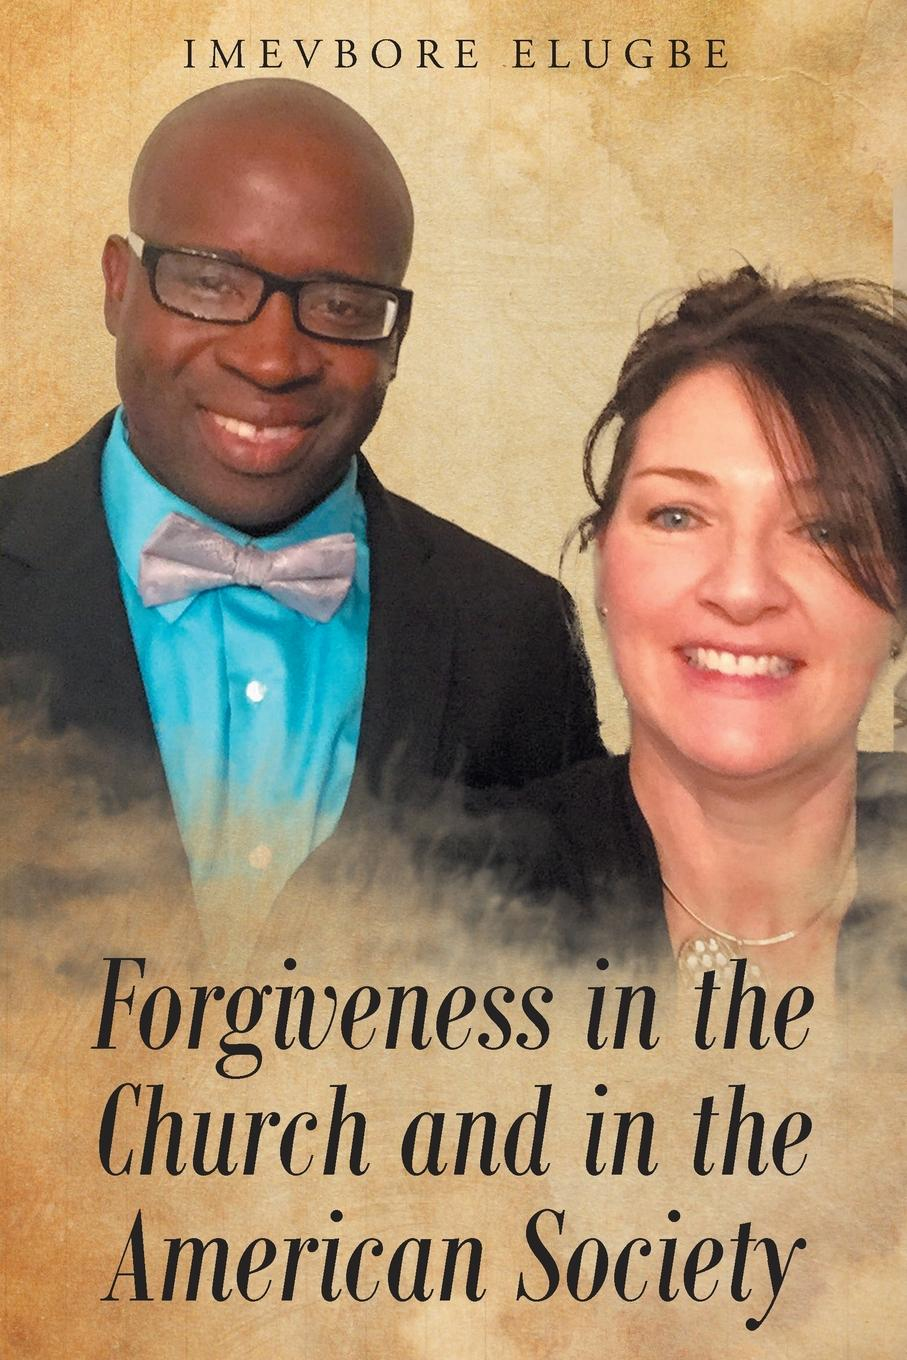 купить Imevbore Elugbe Forgiveness in the Church and in the American Society онлайн